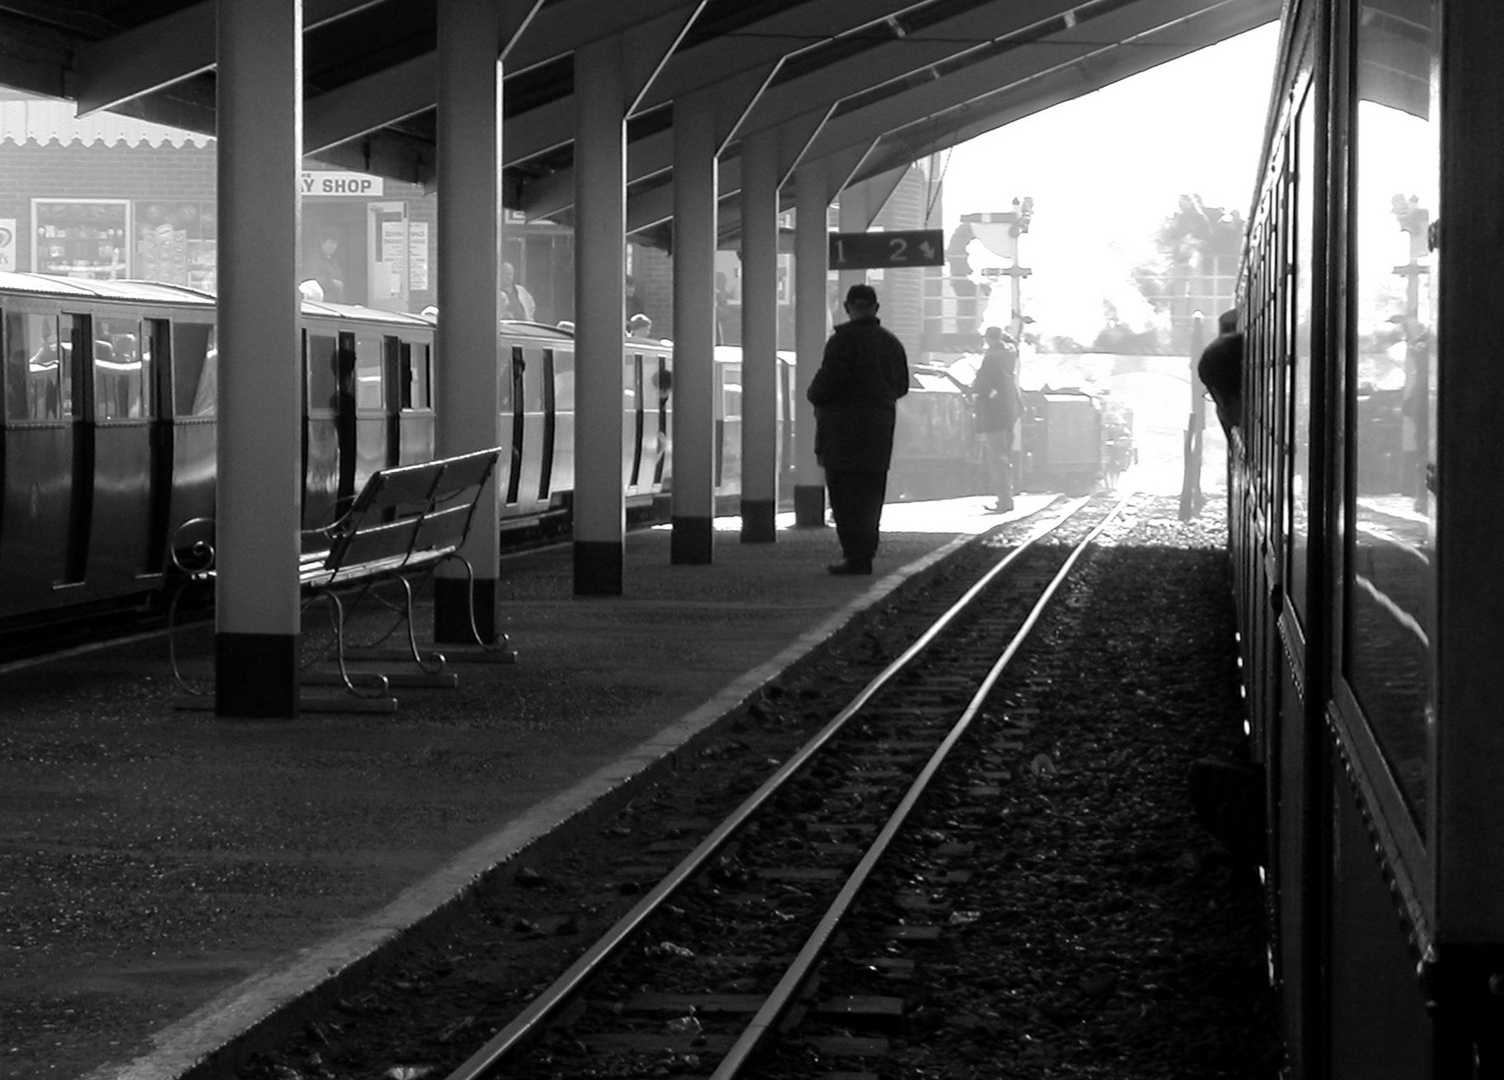 One Man on a Lonely Platform